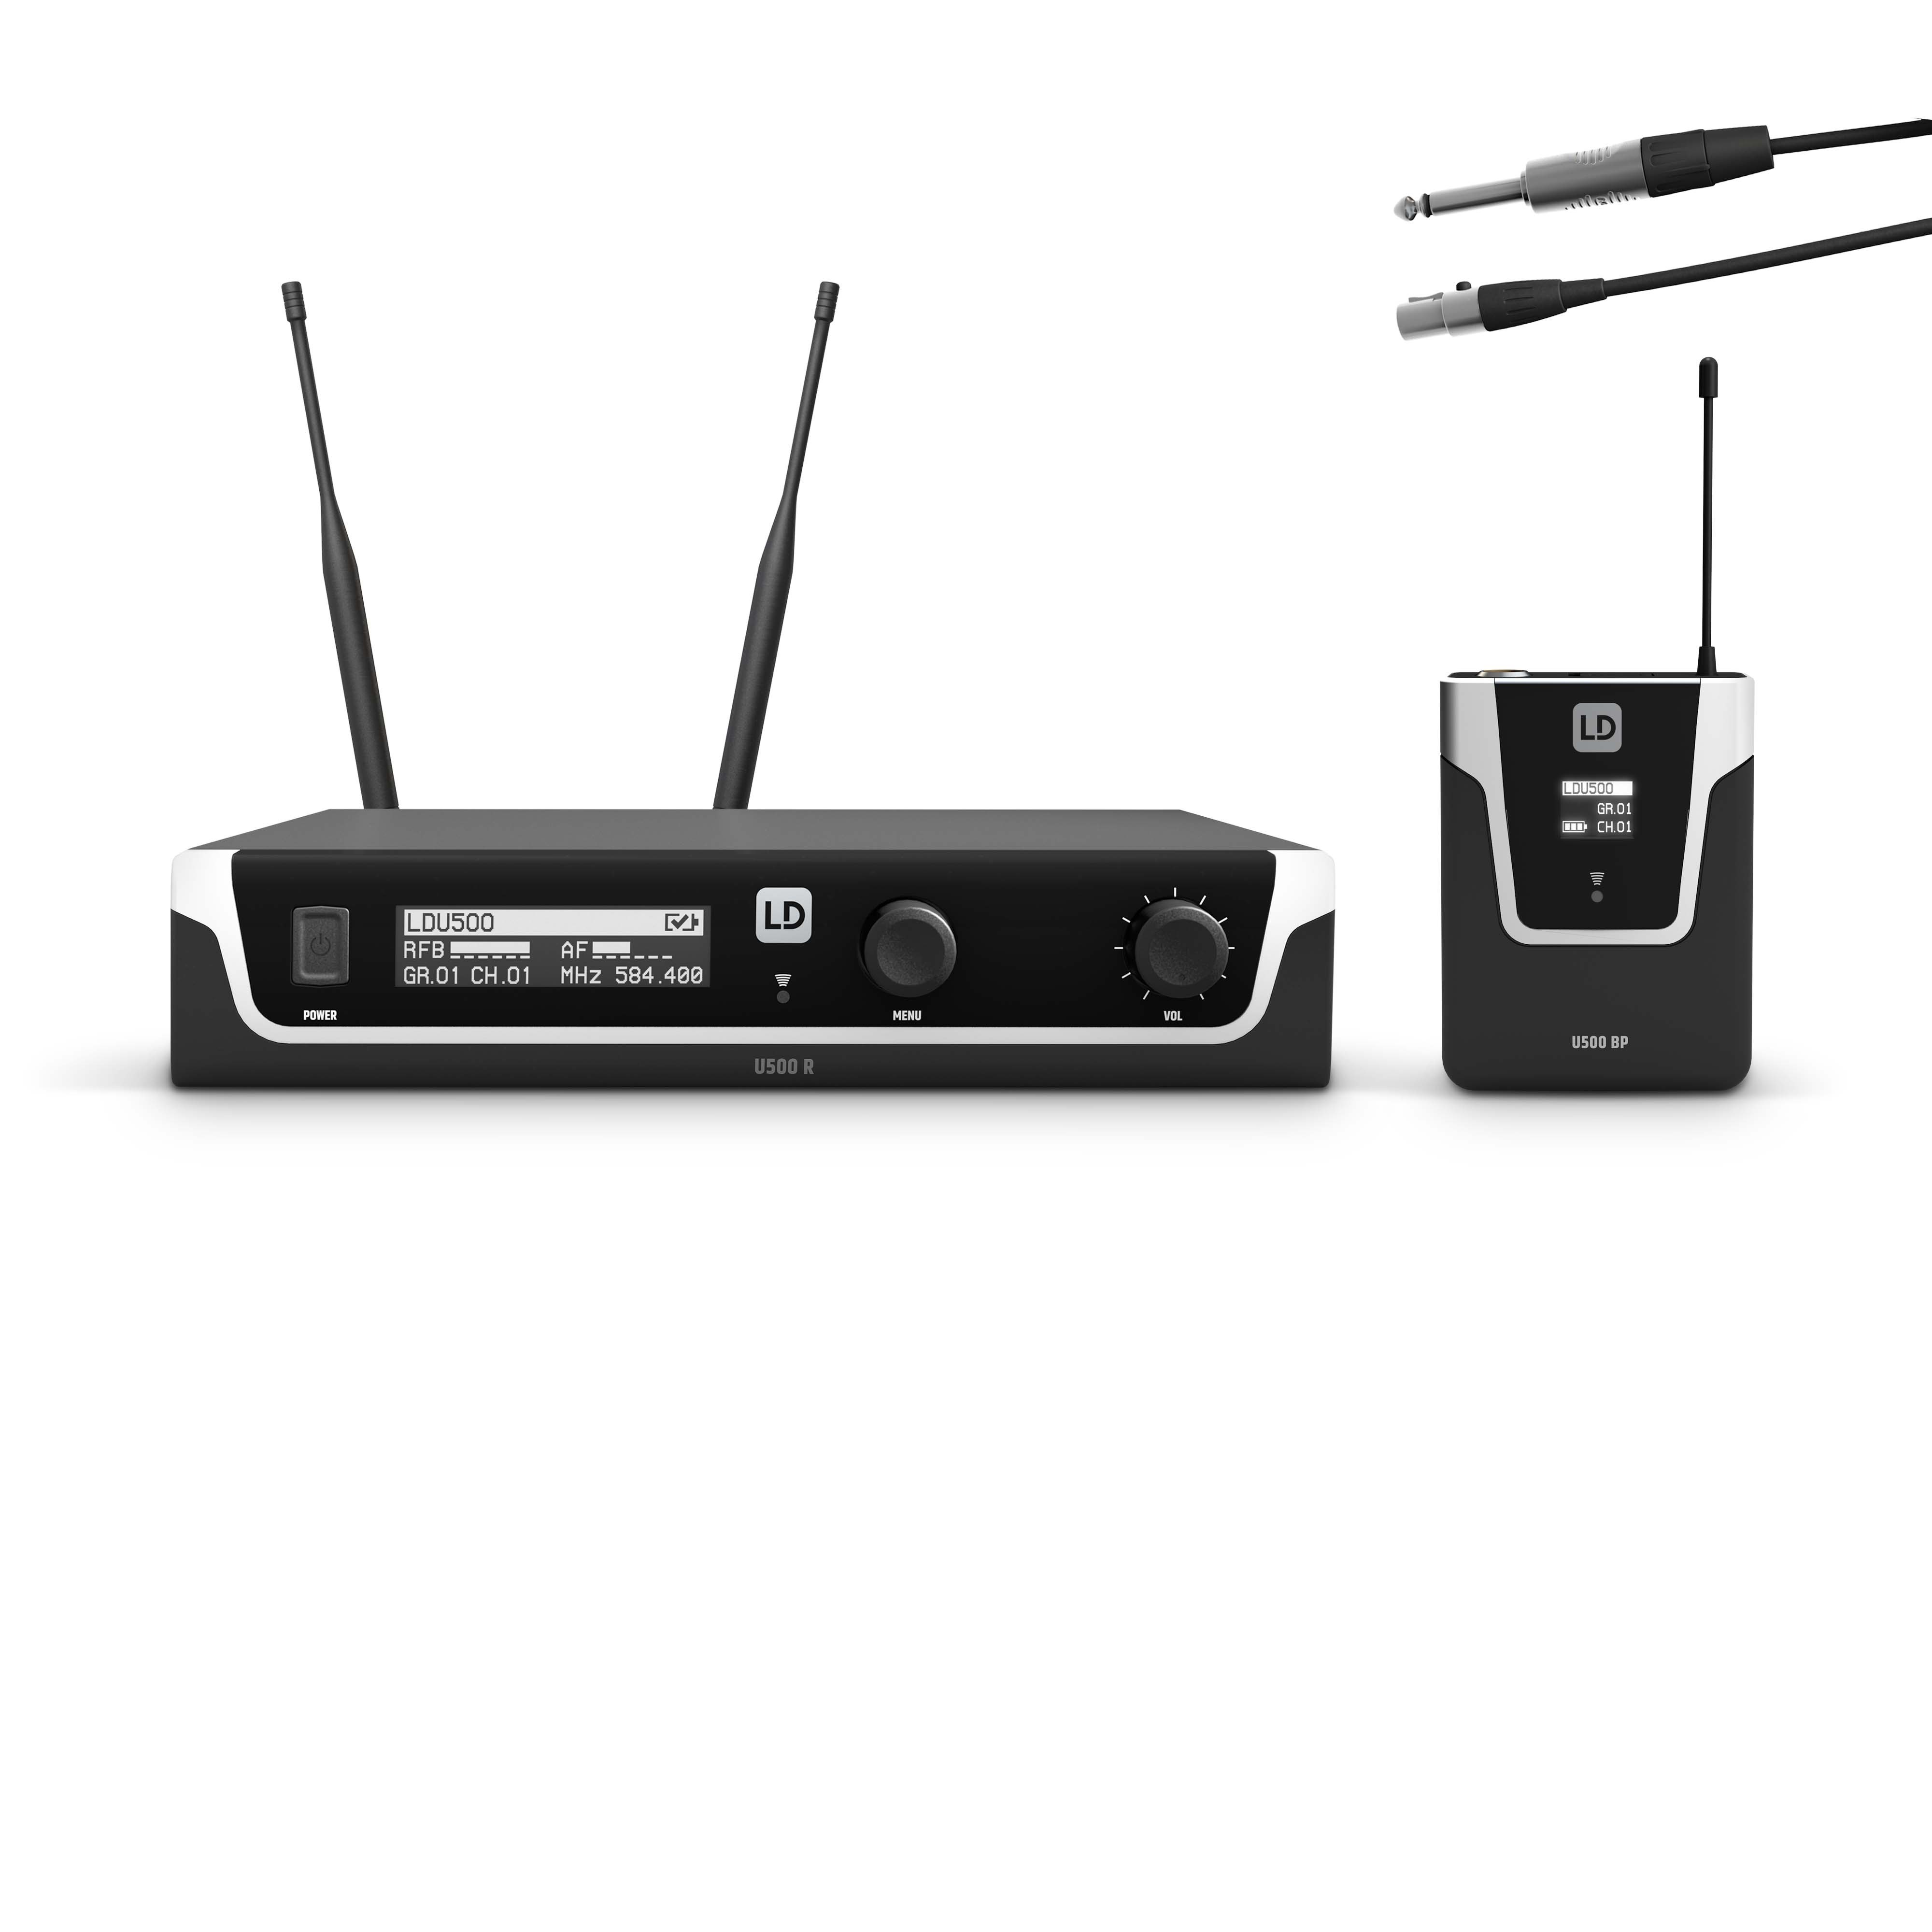 U508 BPG Wireless Microphone System with Bodypack and Guitar Cable